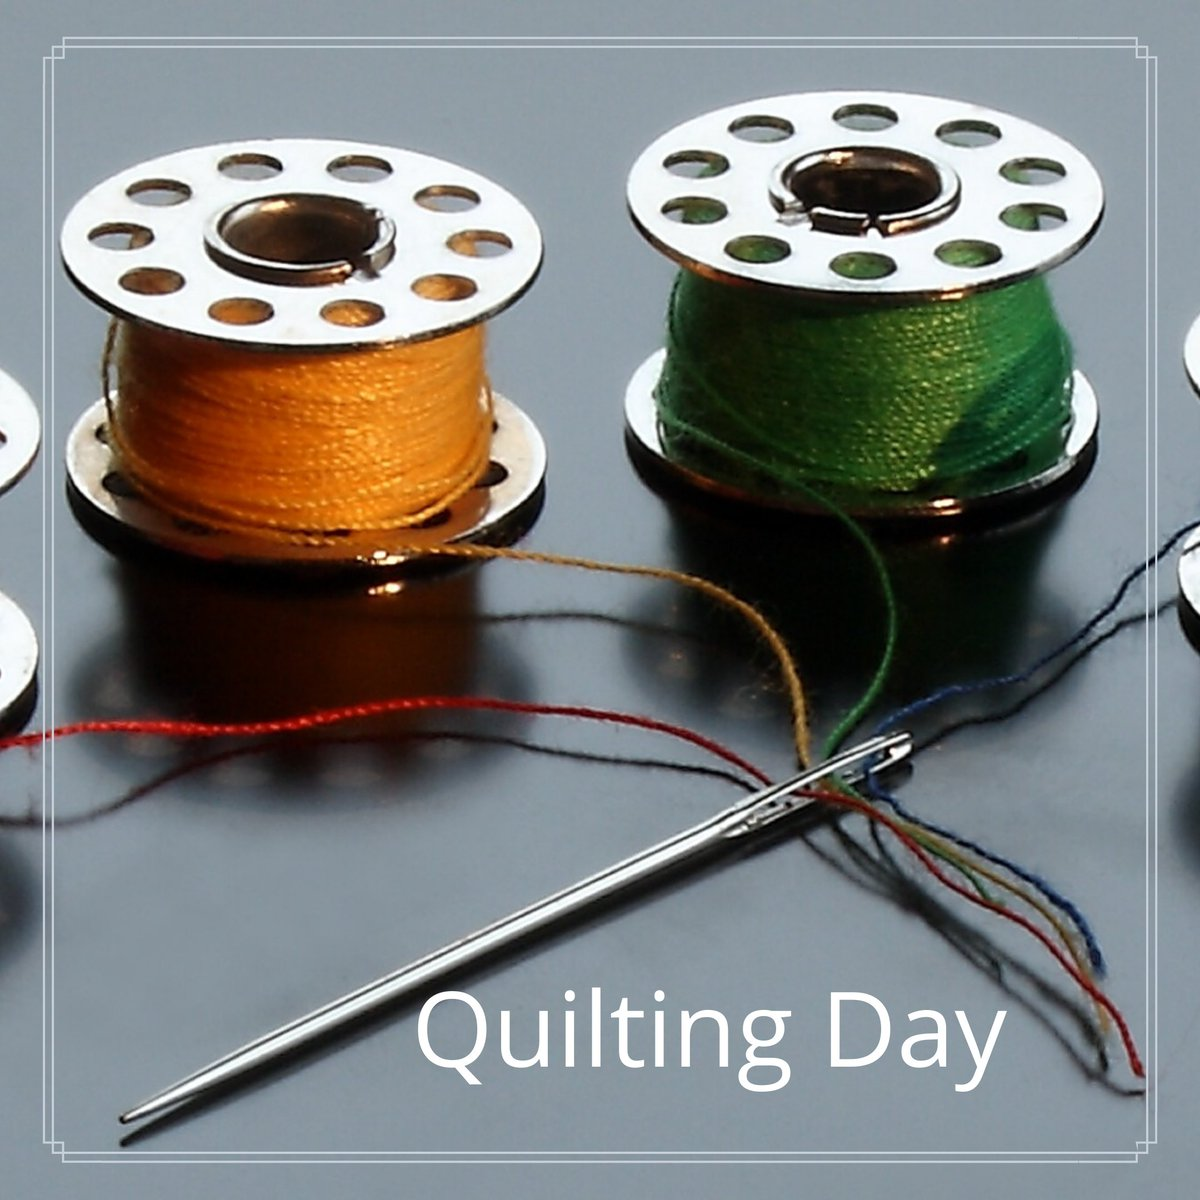 Quilting Day  Flashback  artistic sew lovers jewelry - they all have new owners  #quiltingday #quilting  #sew #sewing #sewlove #quiltlove #quiltlovers #sewinglovers #handmade #lovetosew #lovetoquilt #handsewn #sewingmachine #sewingworkshop #singermachine<br>http://pic.twitter.com/SIeUzxL1H4